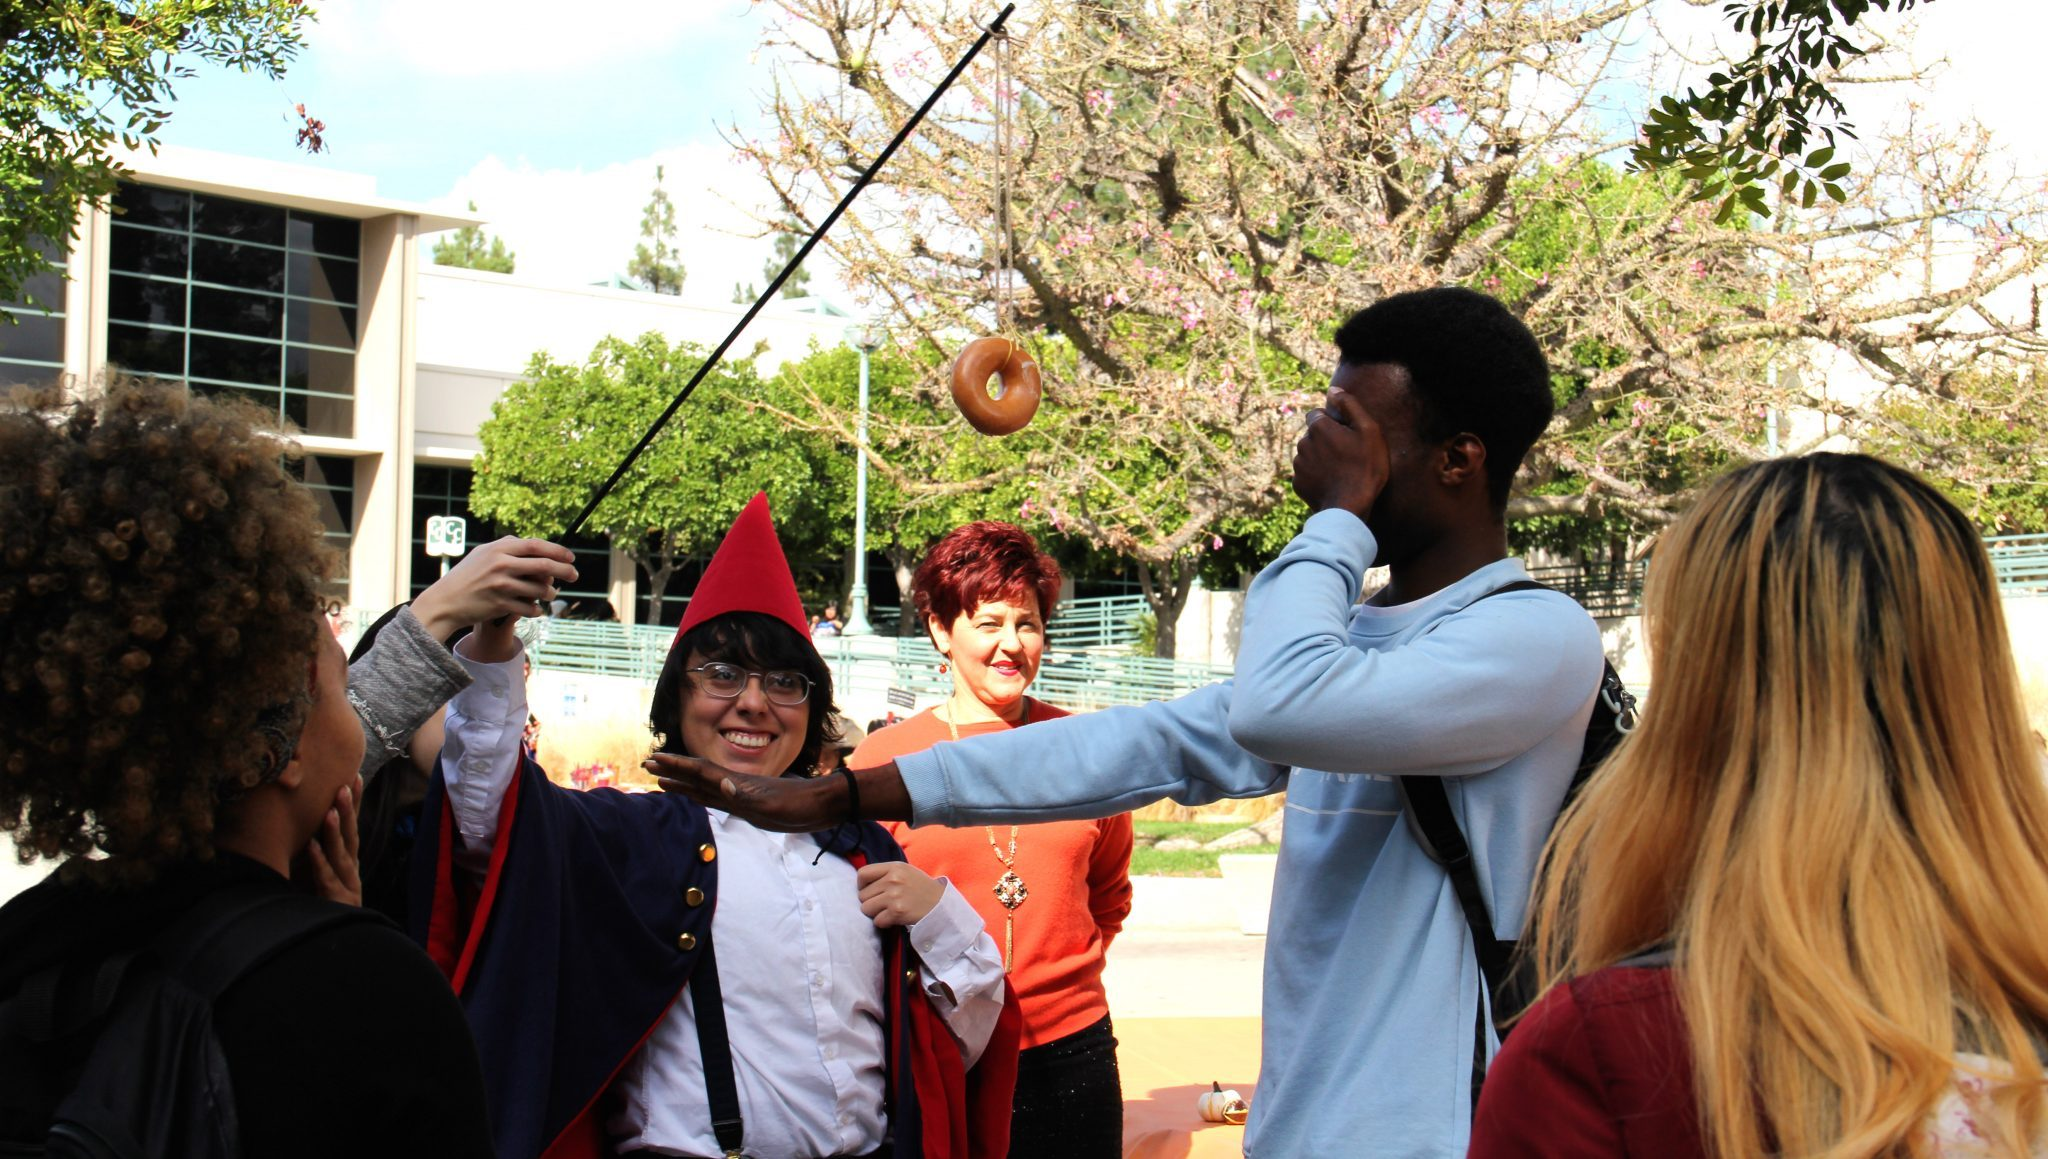 Kait Davie/Courier Ernesto Serrano successfully grabs an apple while bobbing for apples at the Art-O-Ween Fall Festival at PCC.